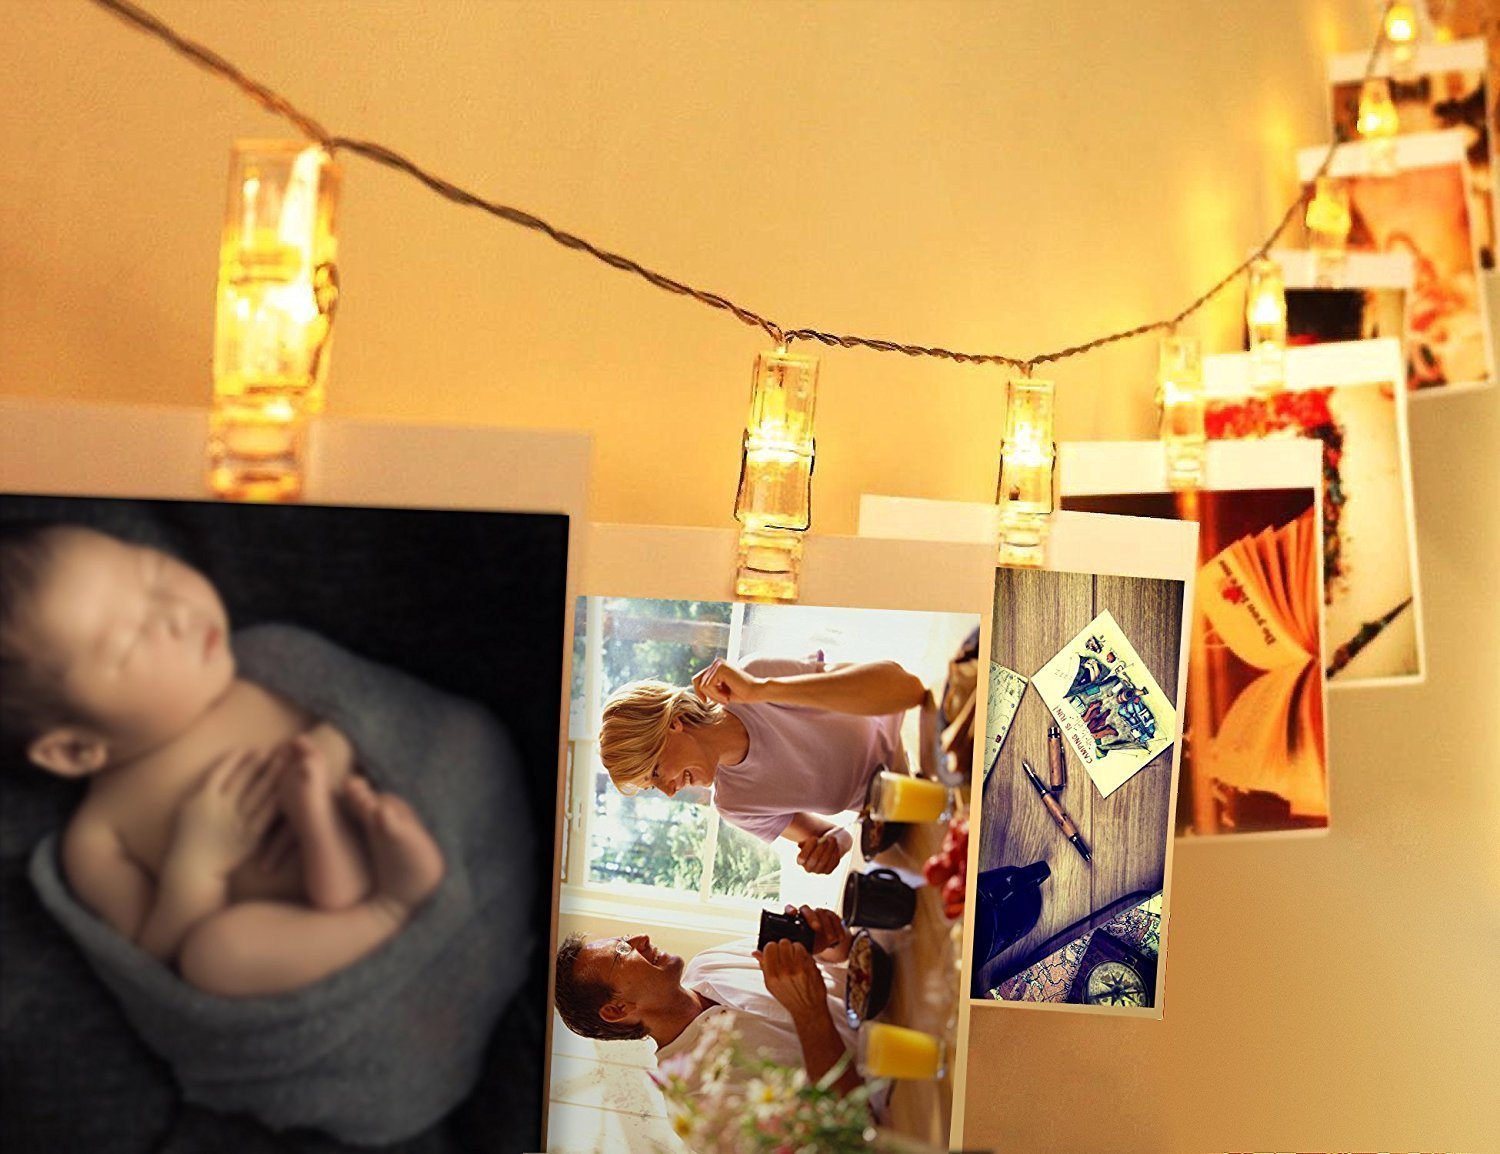 LED String Light with Clothespins, Clip, for Hanging Pictures, Photos, Artworks and More..